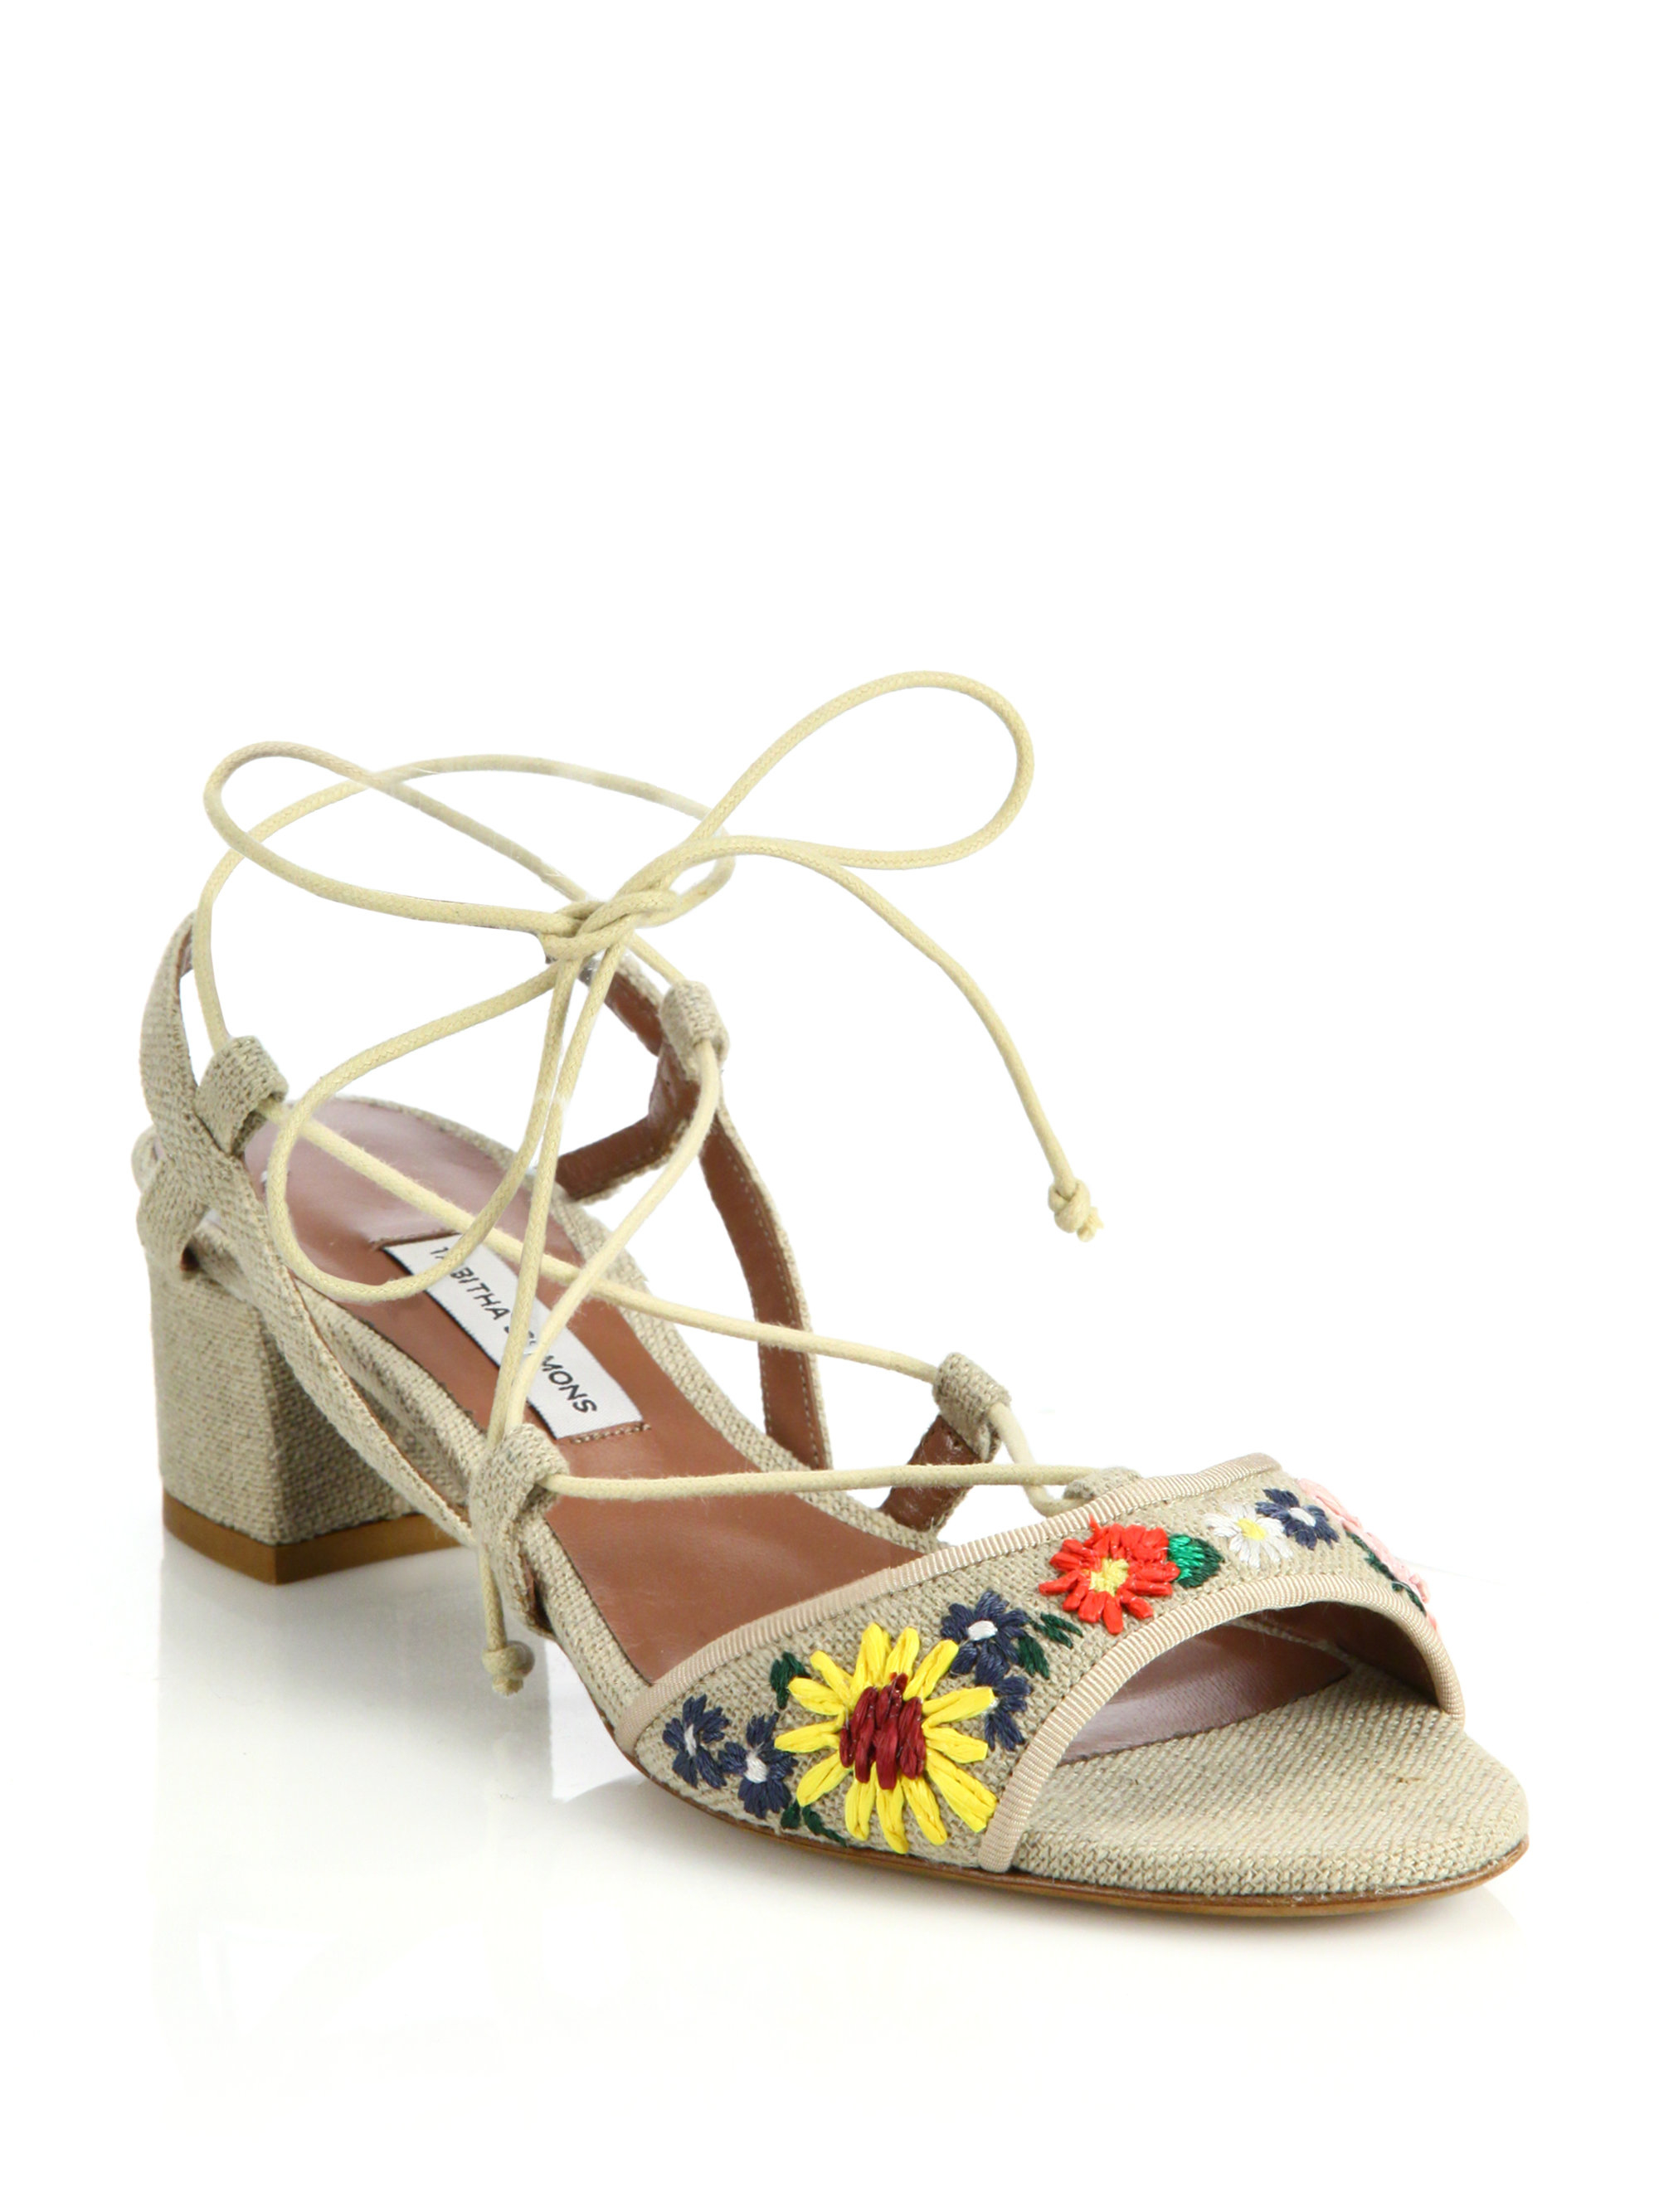 Tabitha Simmons Printed Lace-Tie Espadrilles really online fashion Style shop offer for sale 4AKVA0M